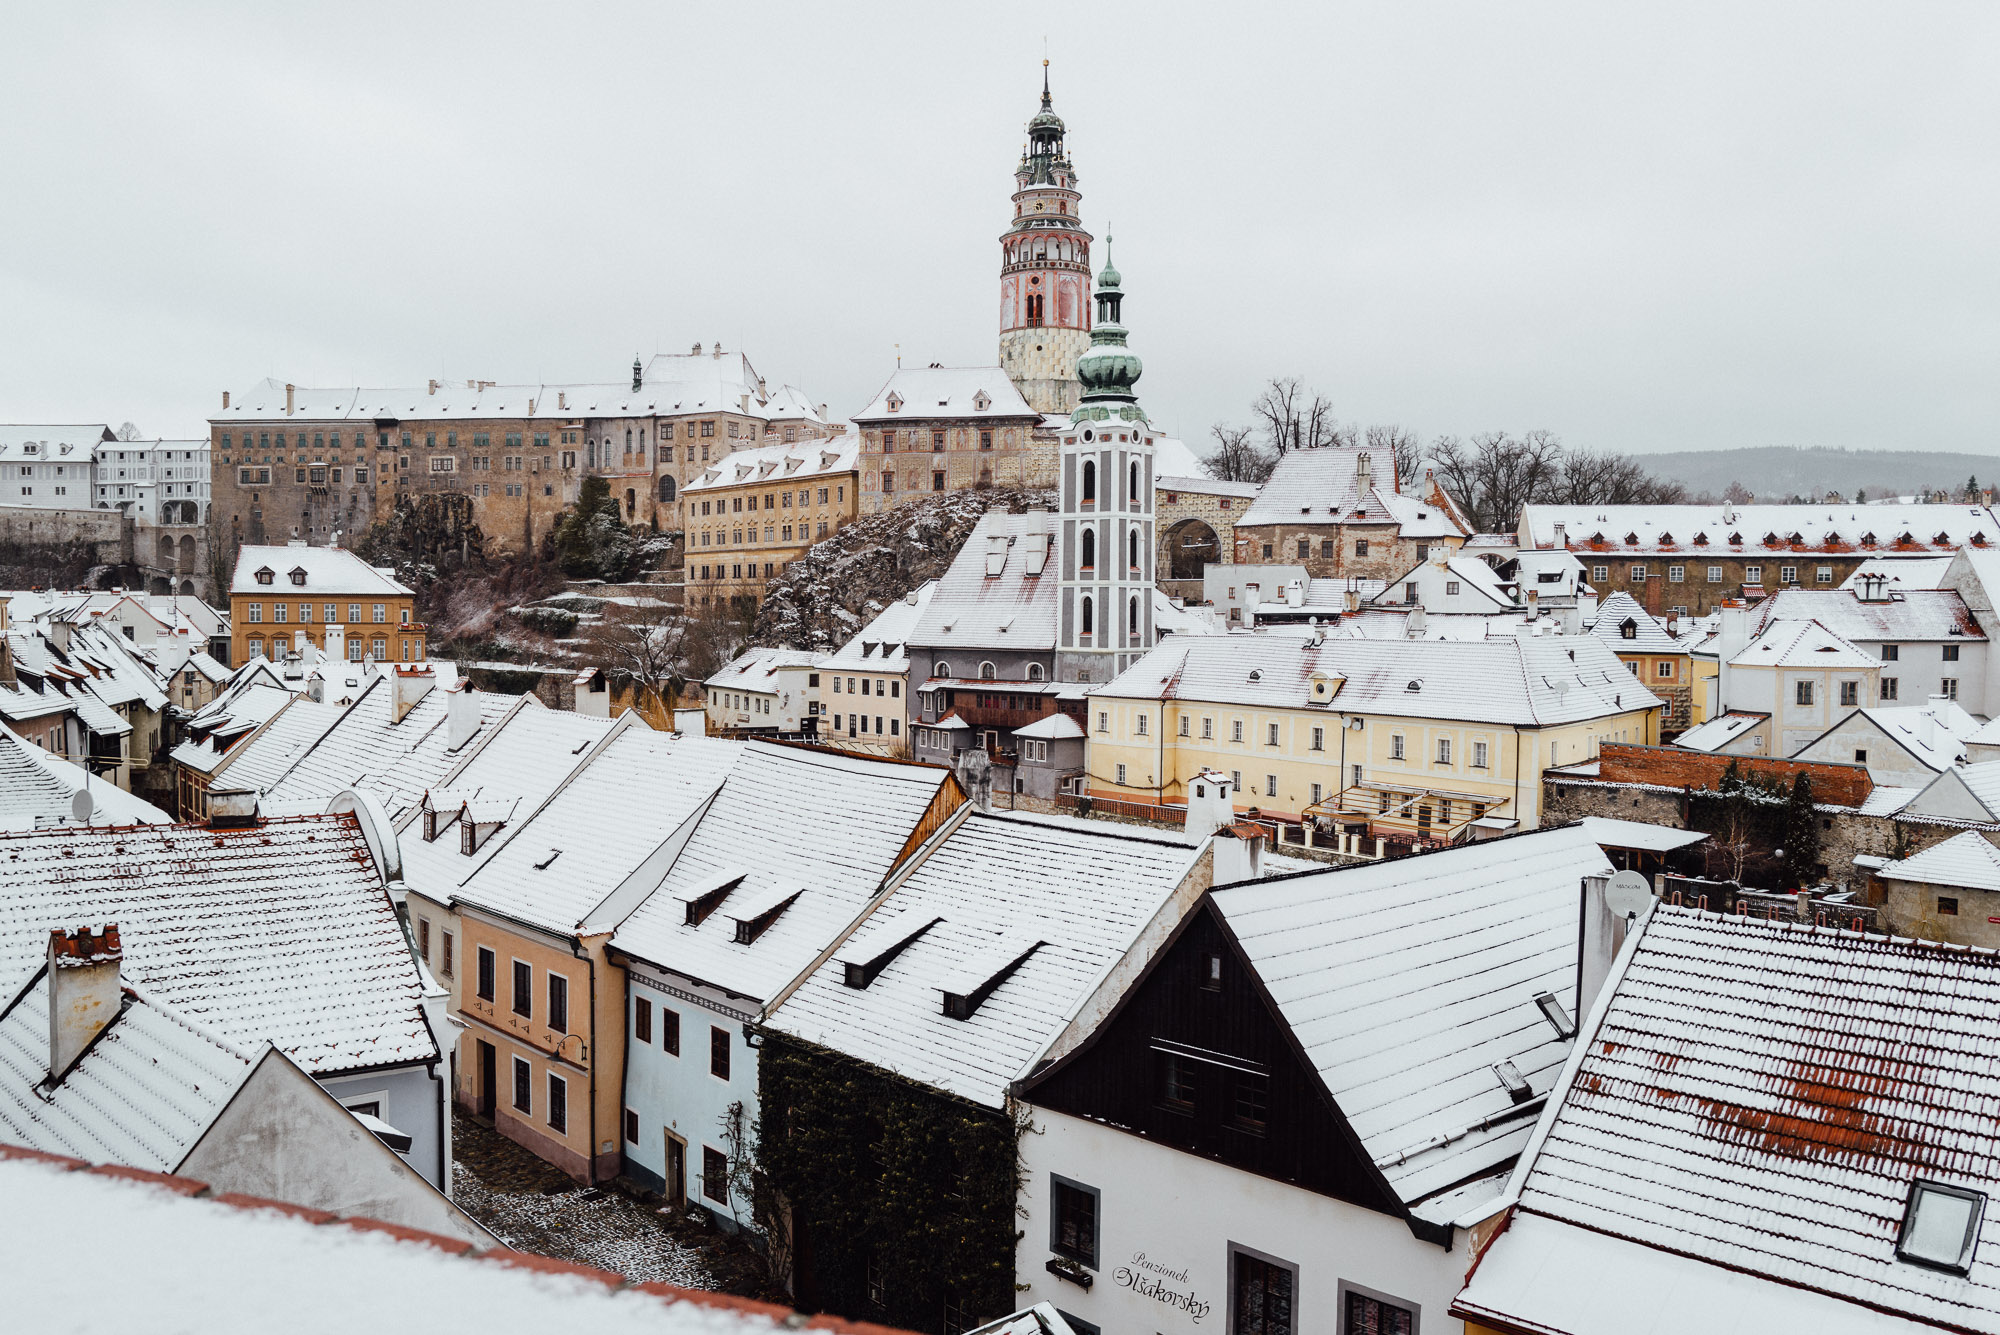 Main view of Cesky Krumlov in town